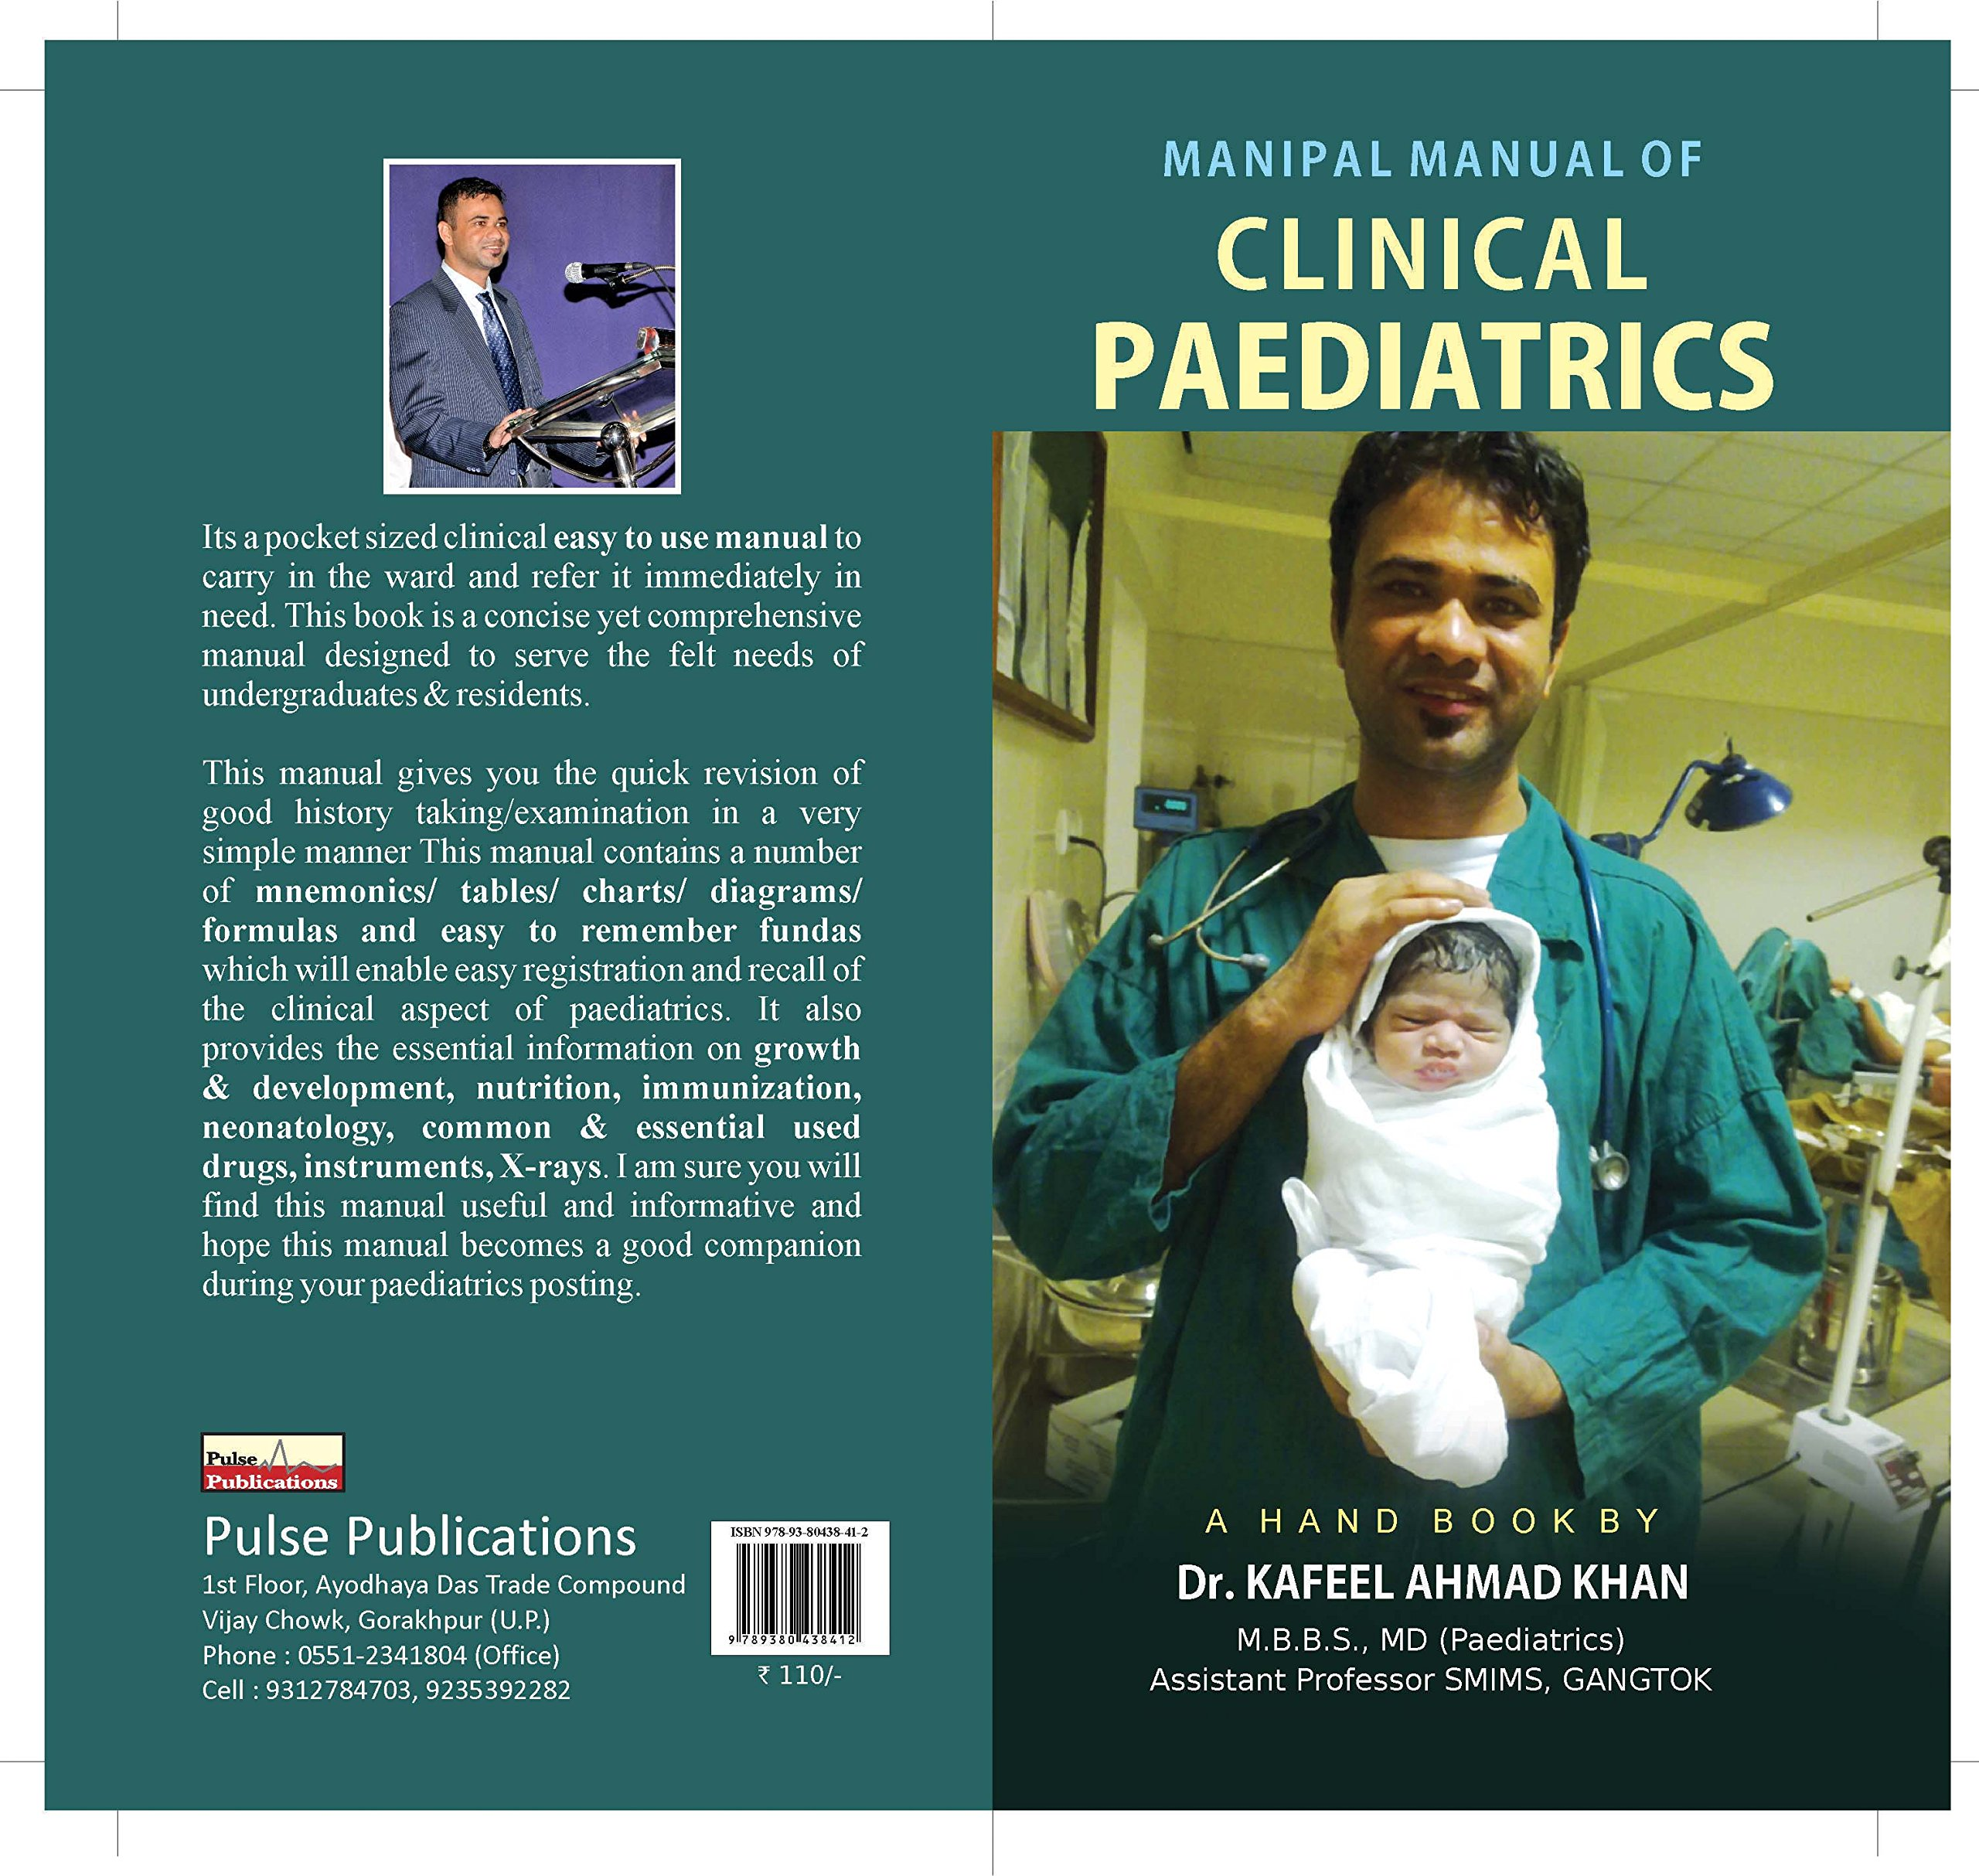 Amazon.in: Buy MANIPAL MANUAL OF CLINICAL PAEDIATRICS (MANIPAL MANUAL OF  CLINICAL PAEDIATRICS) Book Online at Low Prices in India | MANIPAL MANUAL  OF ...